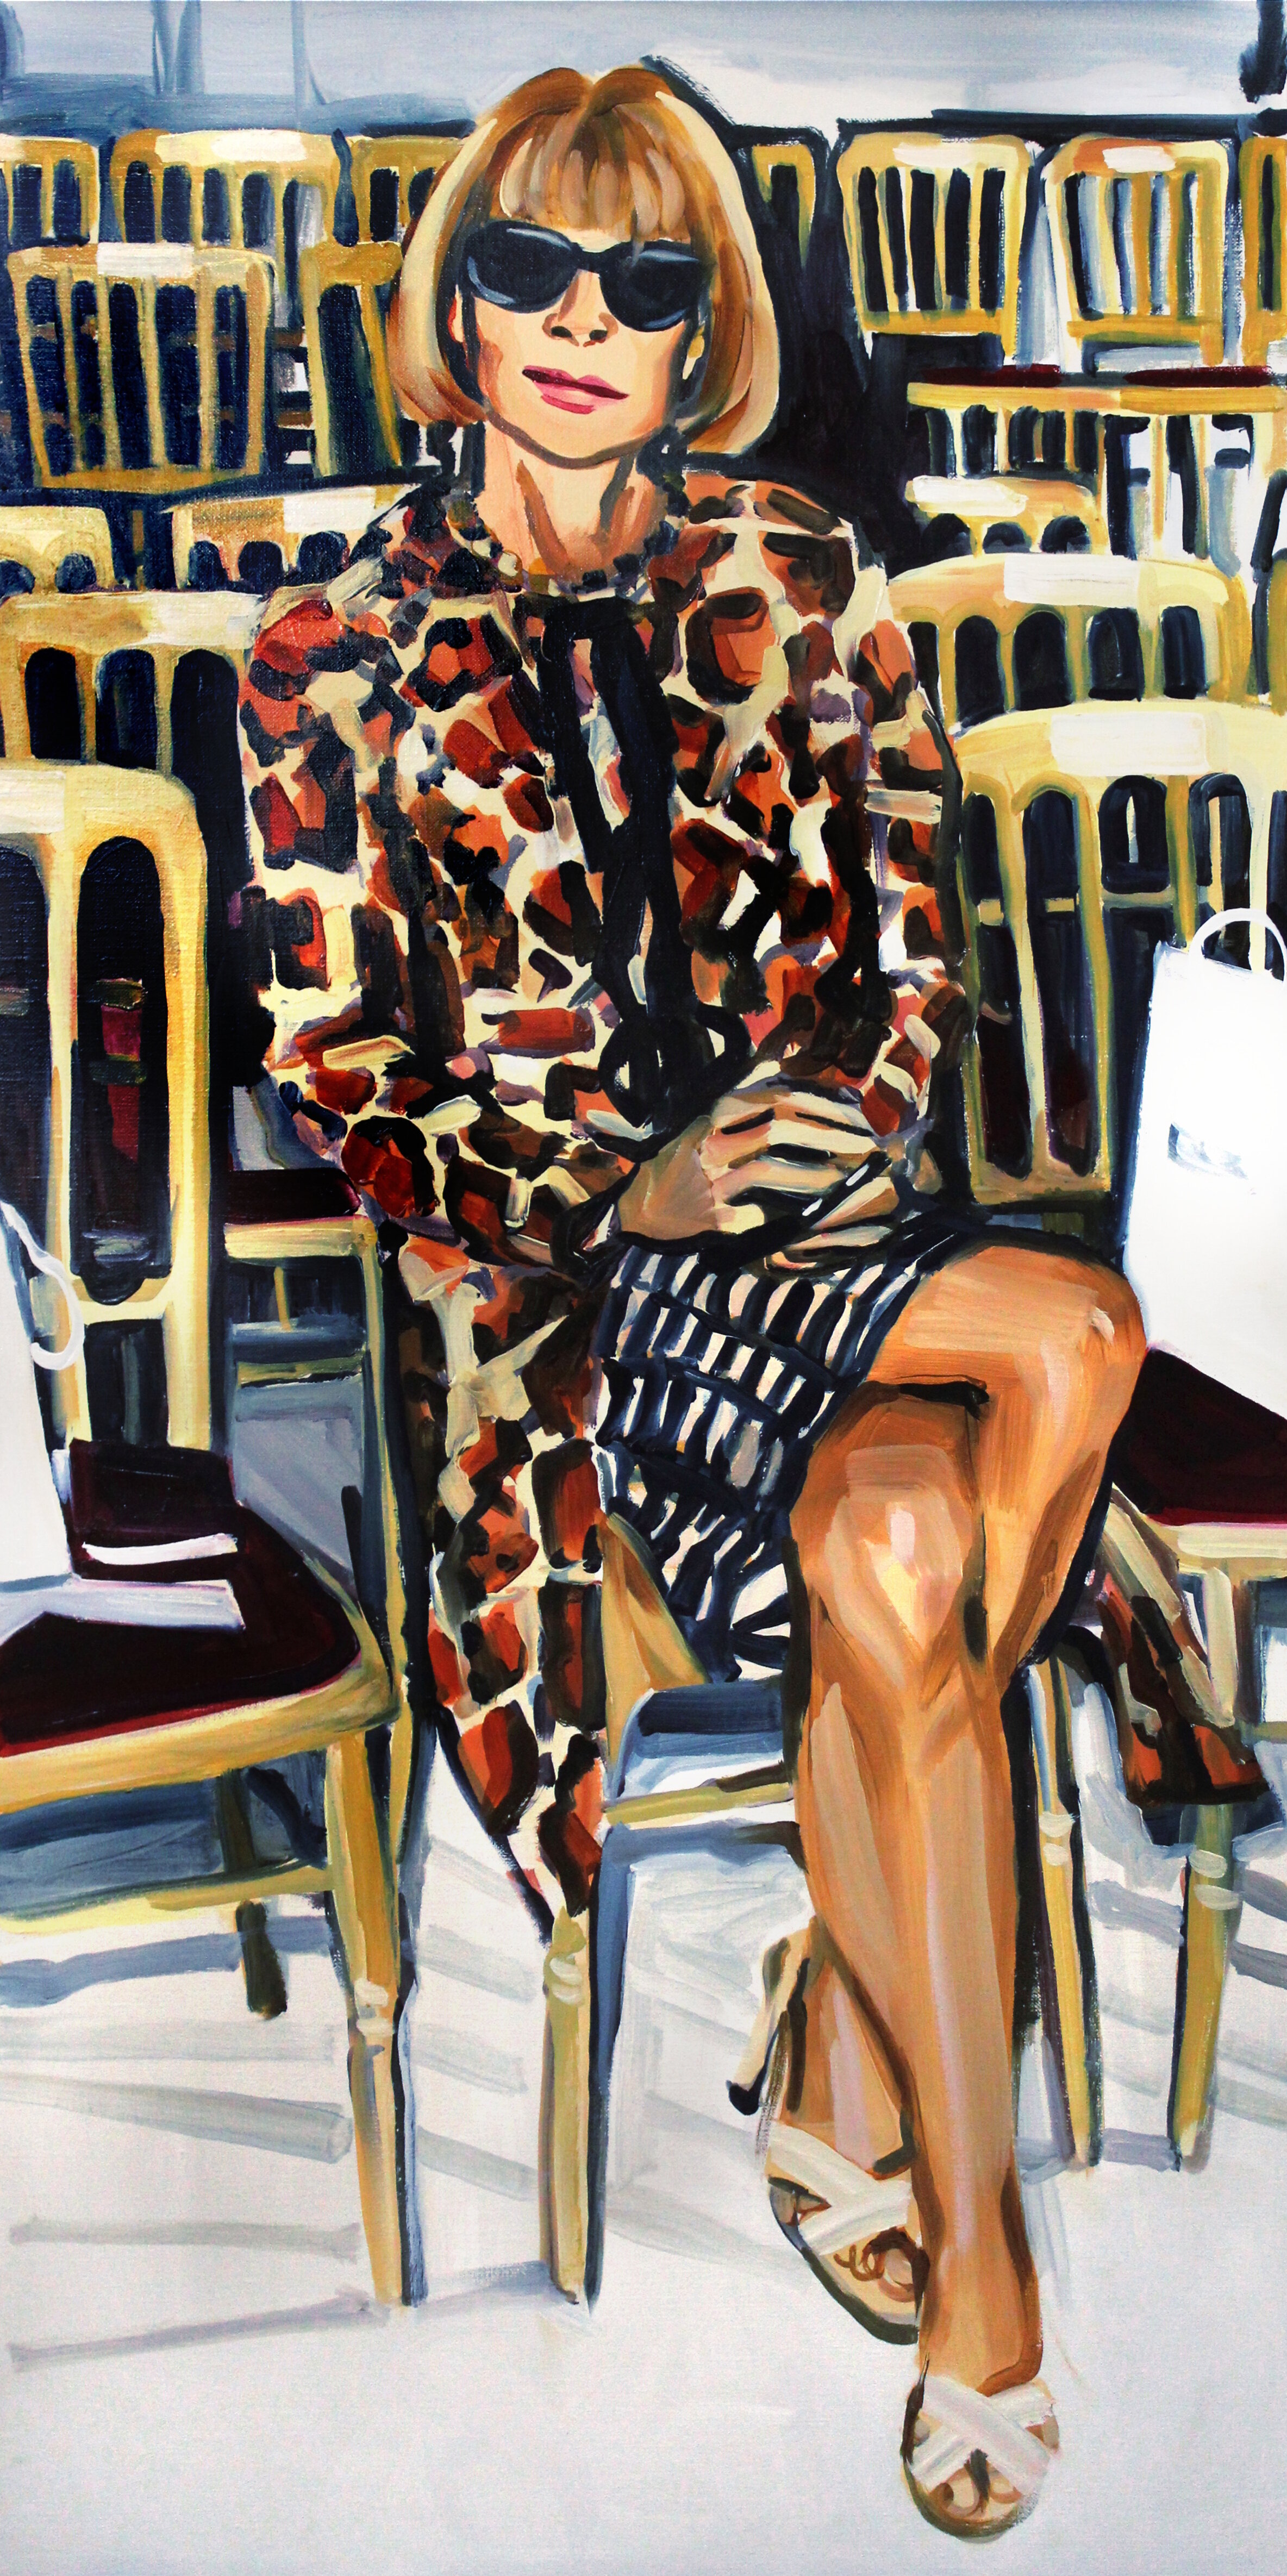 Anna Wintour Double Crossing Her Legs - This series by Laura Collins explored the front row behavior of Anna Wintour. In a narrow gallery on the Lower East Side you had the opportunity to walk the cat walk (made of cat pictures) and hung low on either side of you were life size oil paintings, hung low, of Anna Wintour, judging you. Models only!Read about it in the Daily Beast.